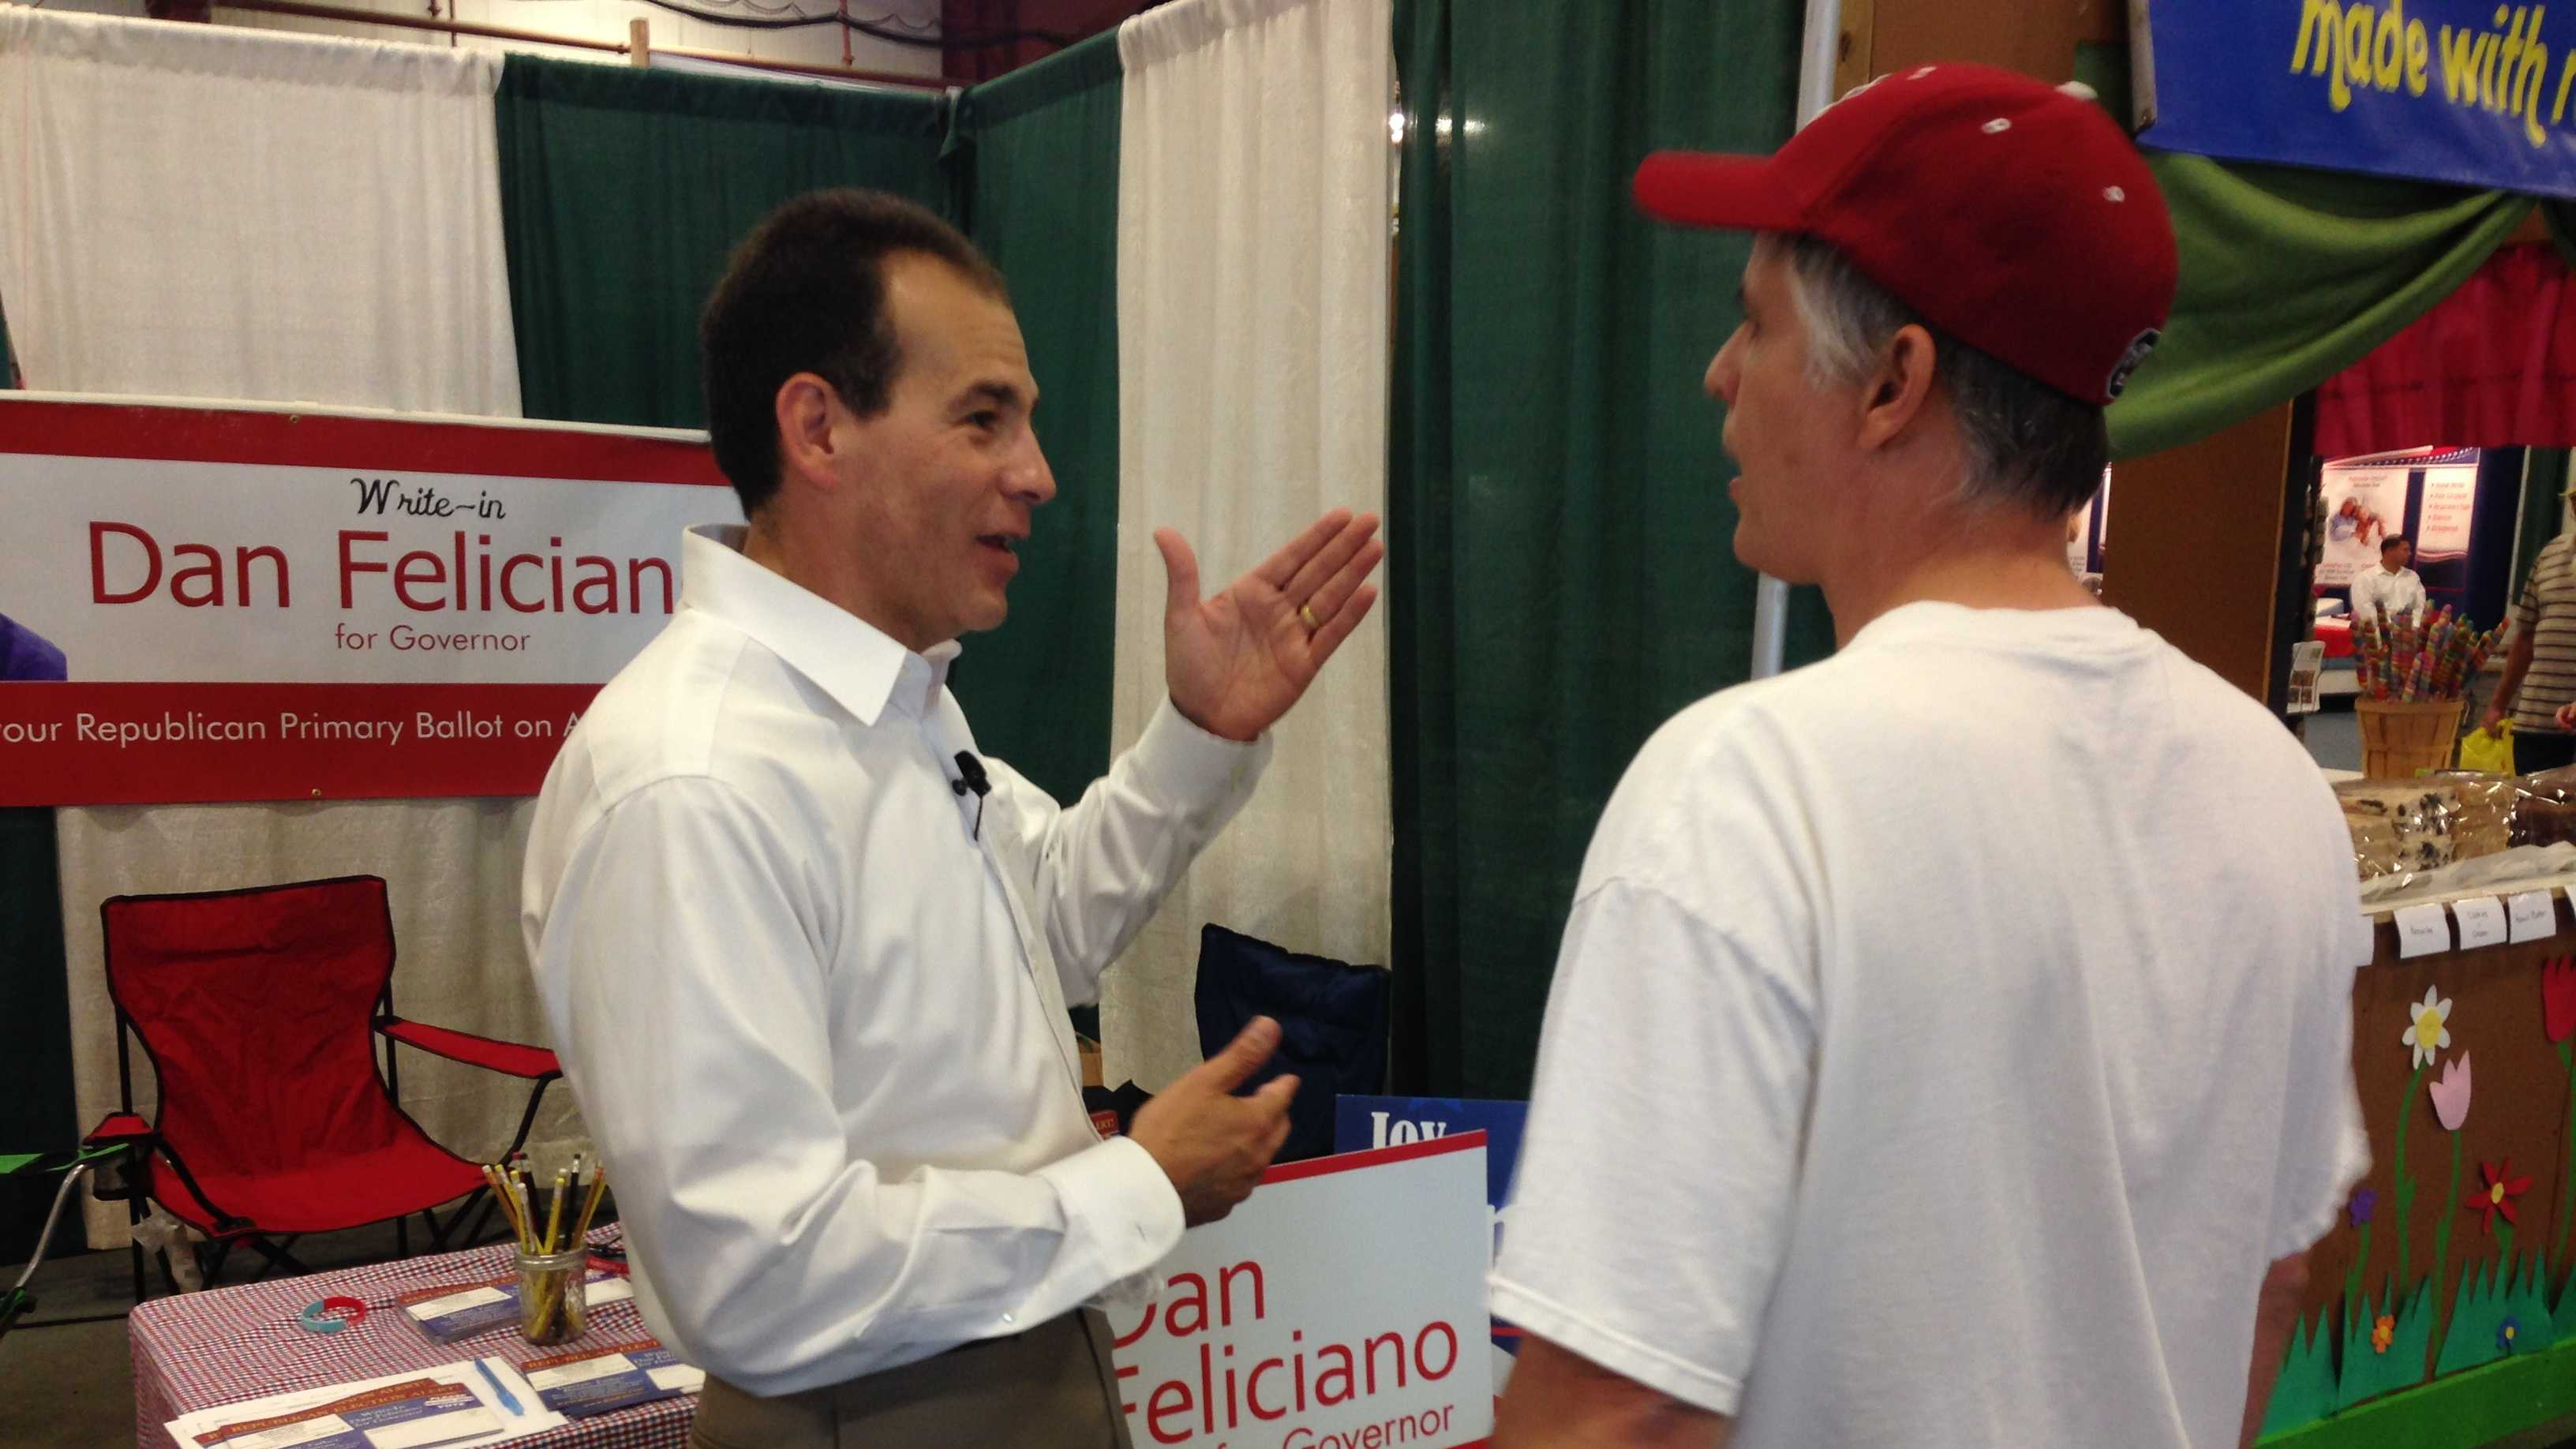 Dan Feliciano with voter Monday 08-25-14